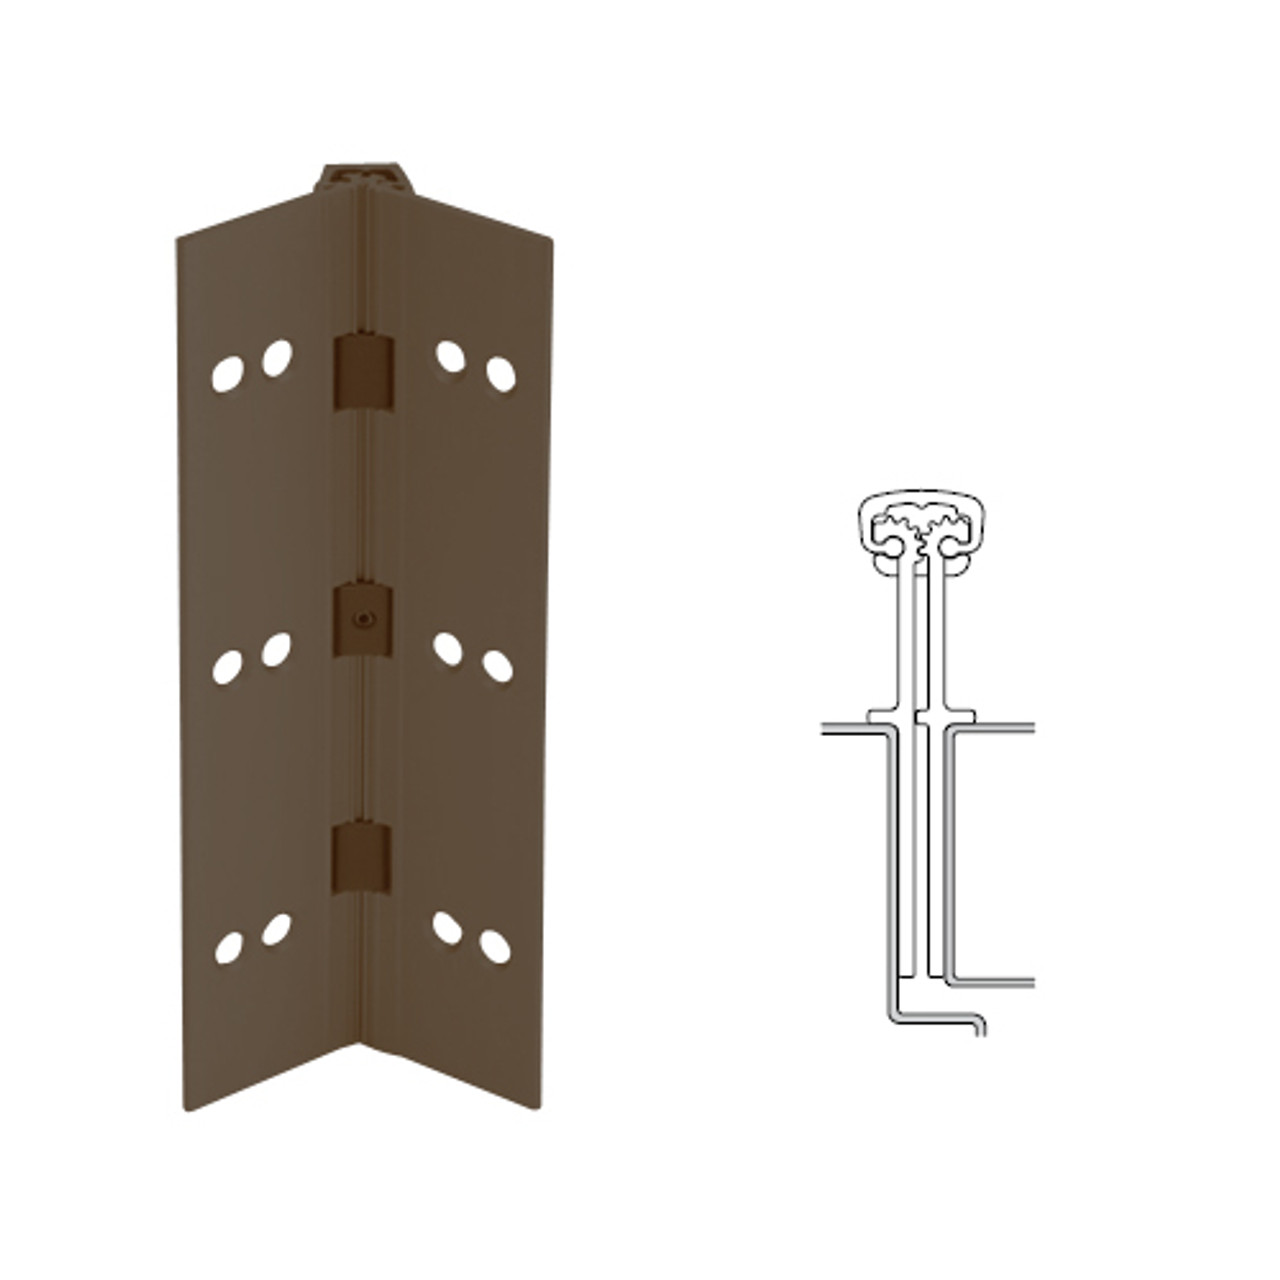 040XY-313AN-120-TF IVES Full Mortise Continuous Geared Hinges with Thread Forming Screws in Dark Bronze Anodized